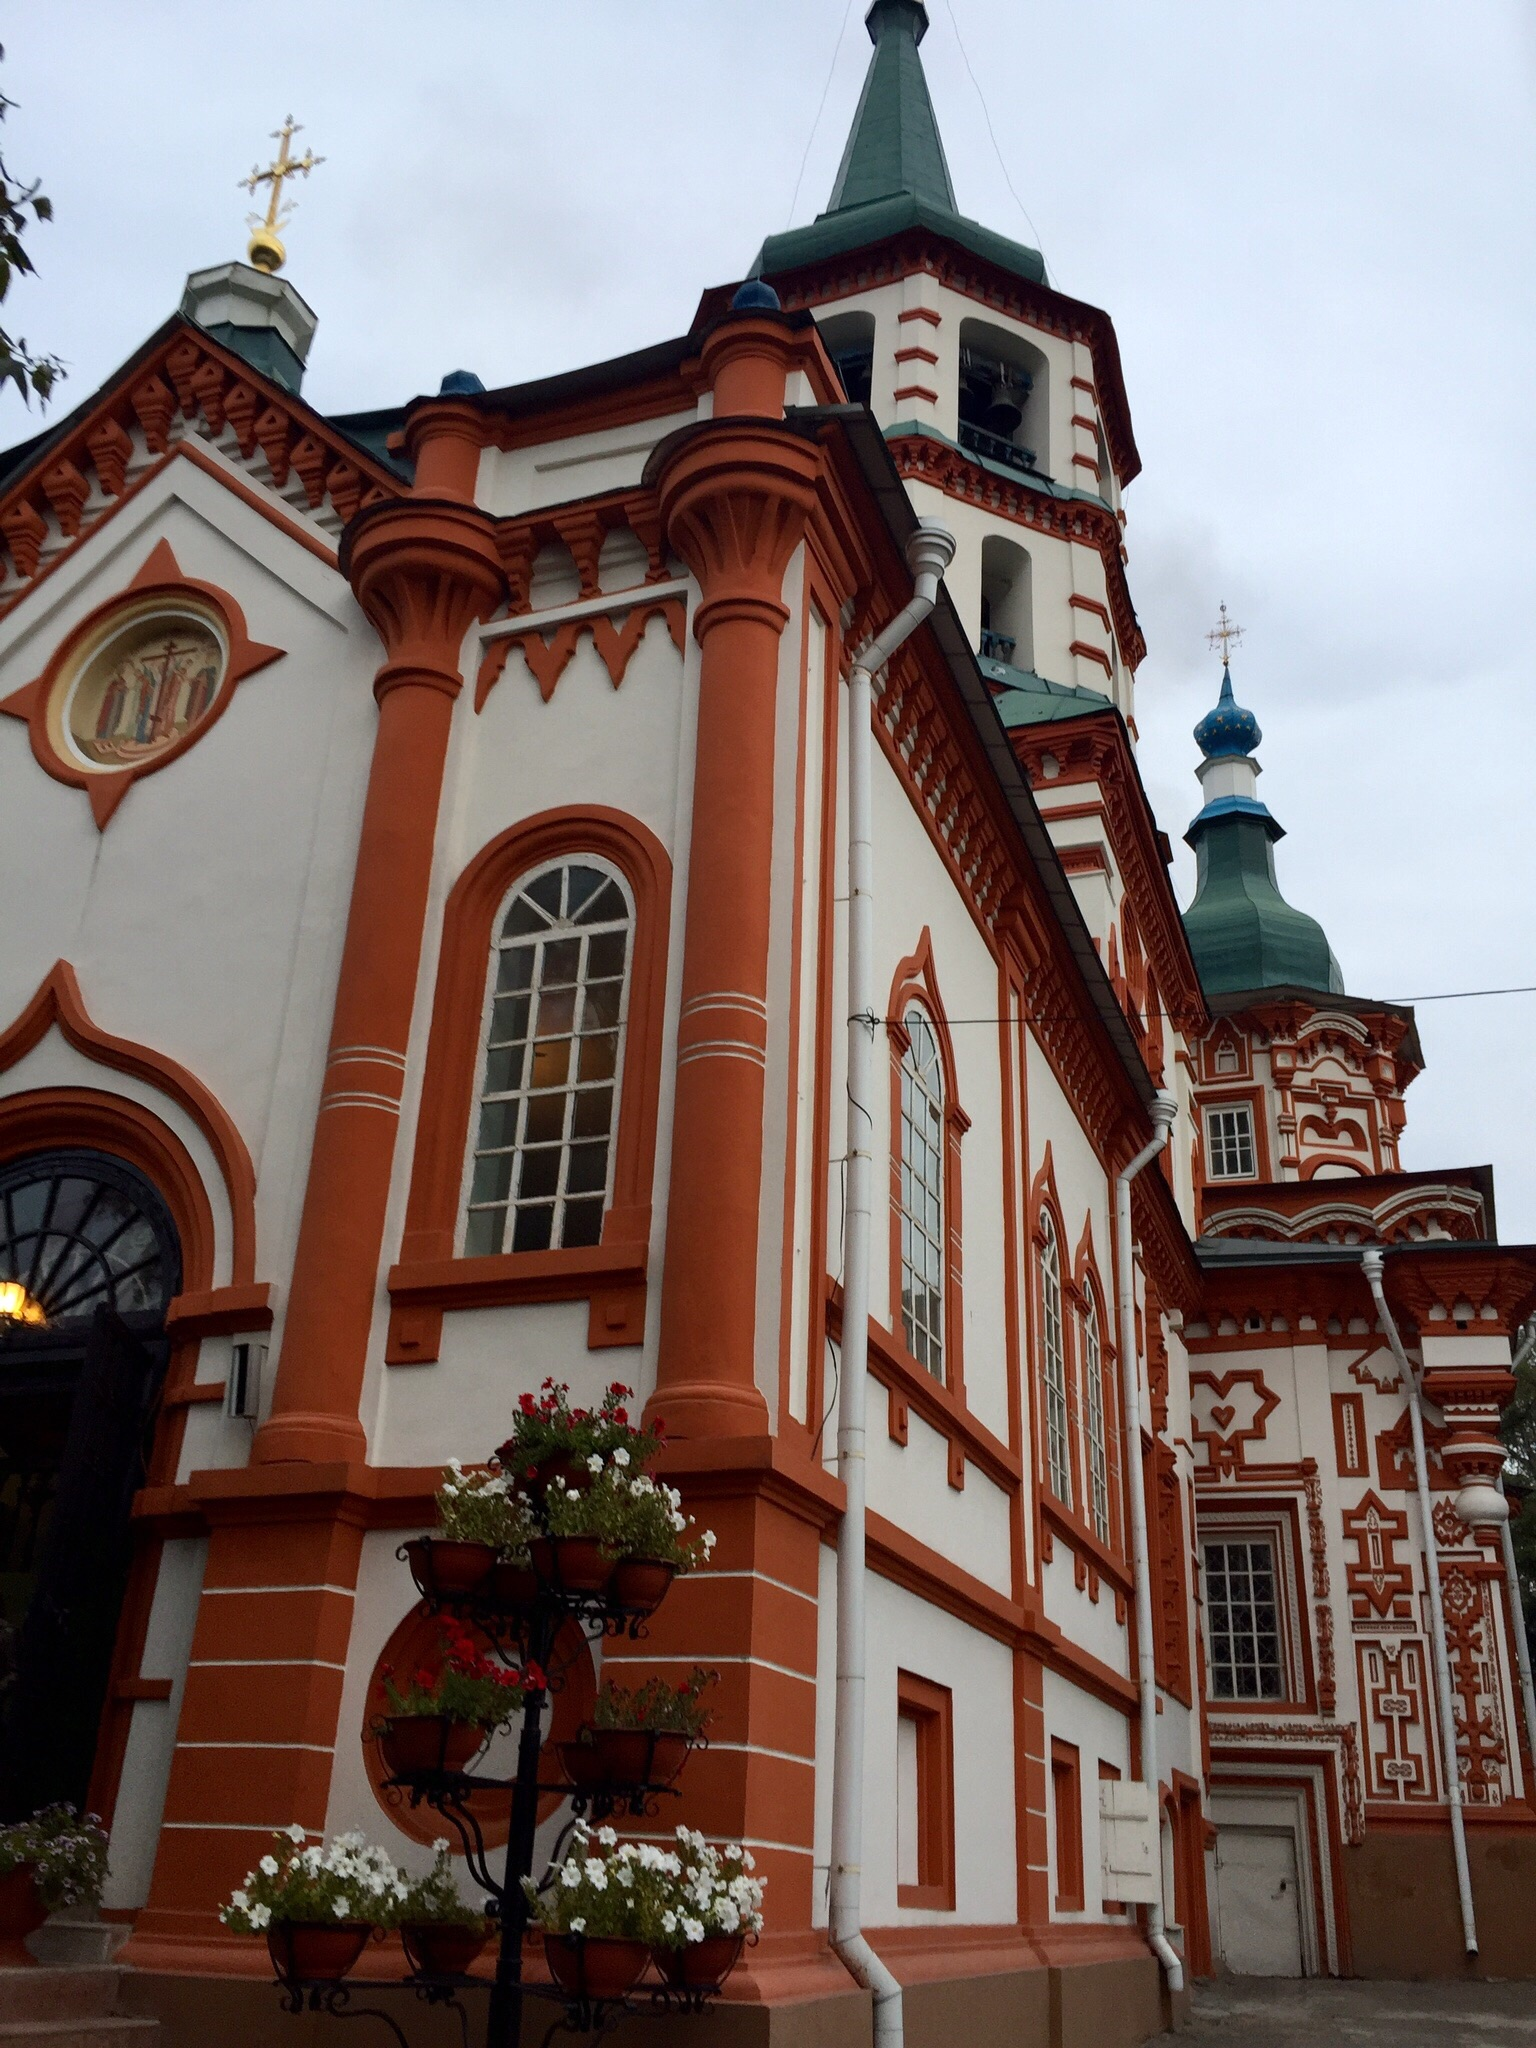 The Holy Cross Cathedral, one of the first buildings we saw as we walked around Irkutsk after our arrival. Inside it was a typical Orthodox catheral.